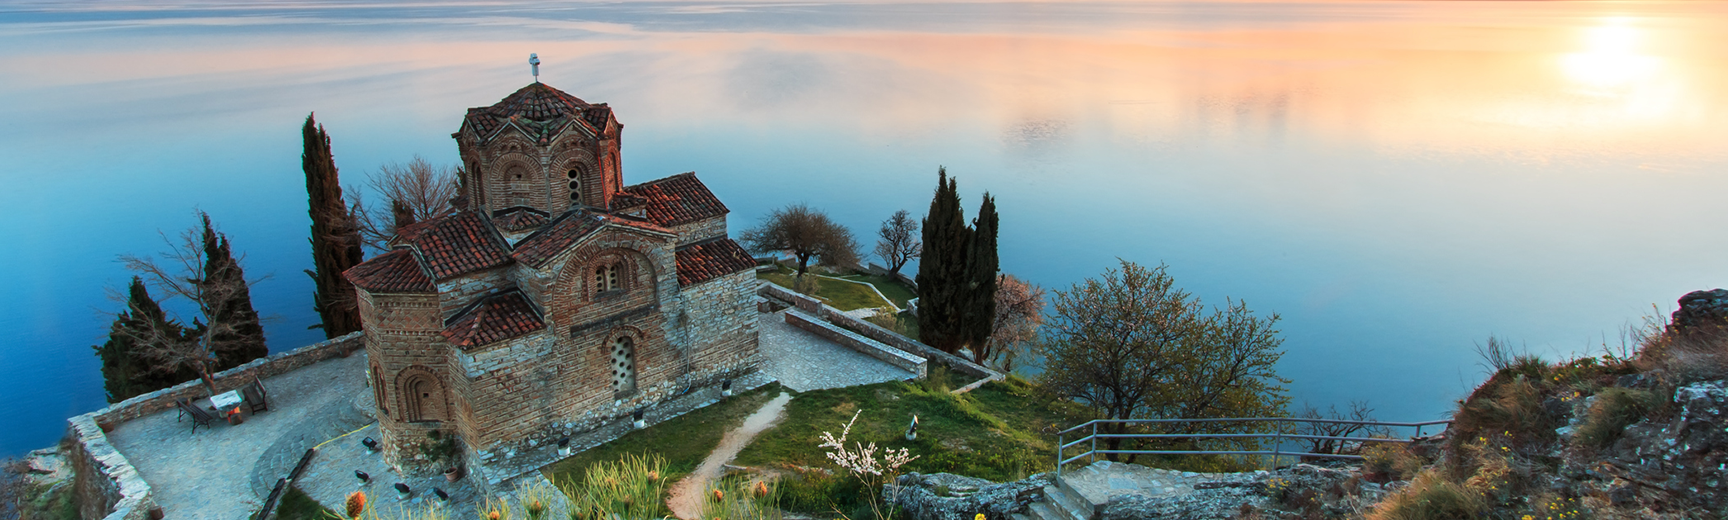 Sveti Jovan Kaneo Church in the foreground on the shore of Lake Ohrid